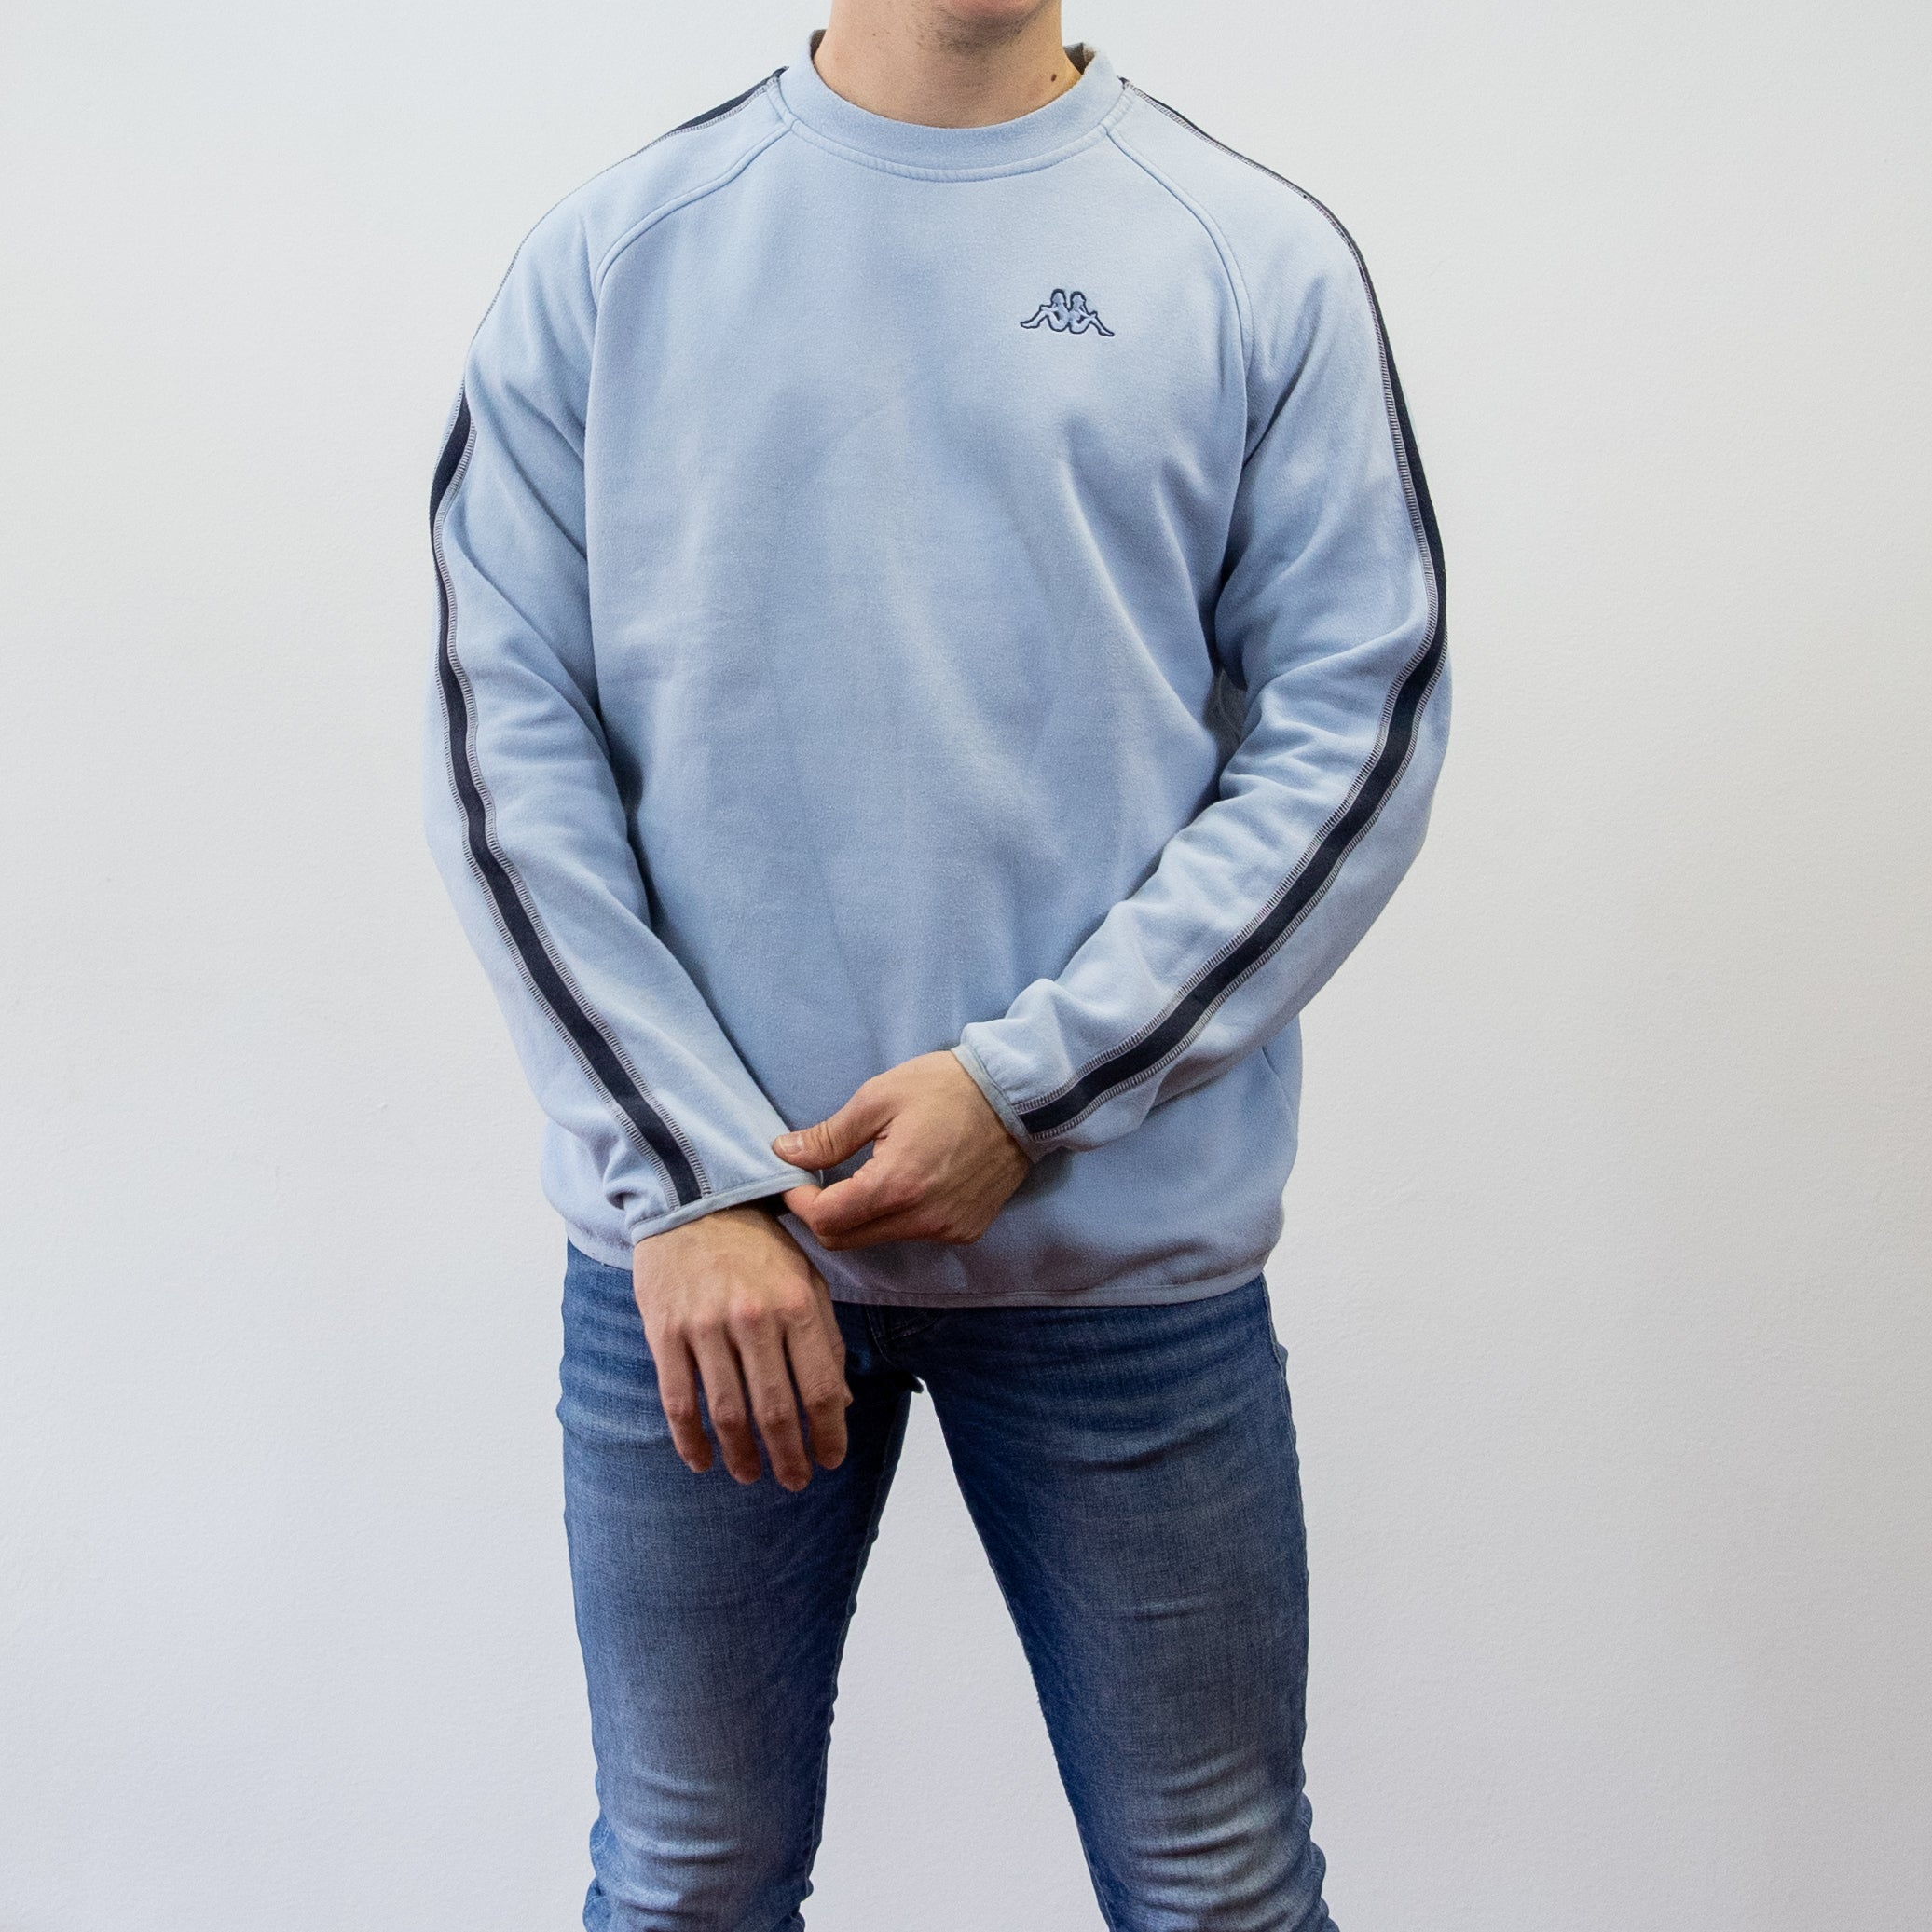 Kappa Sweatshirt - Large